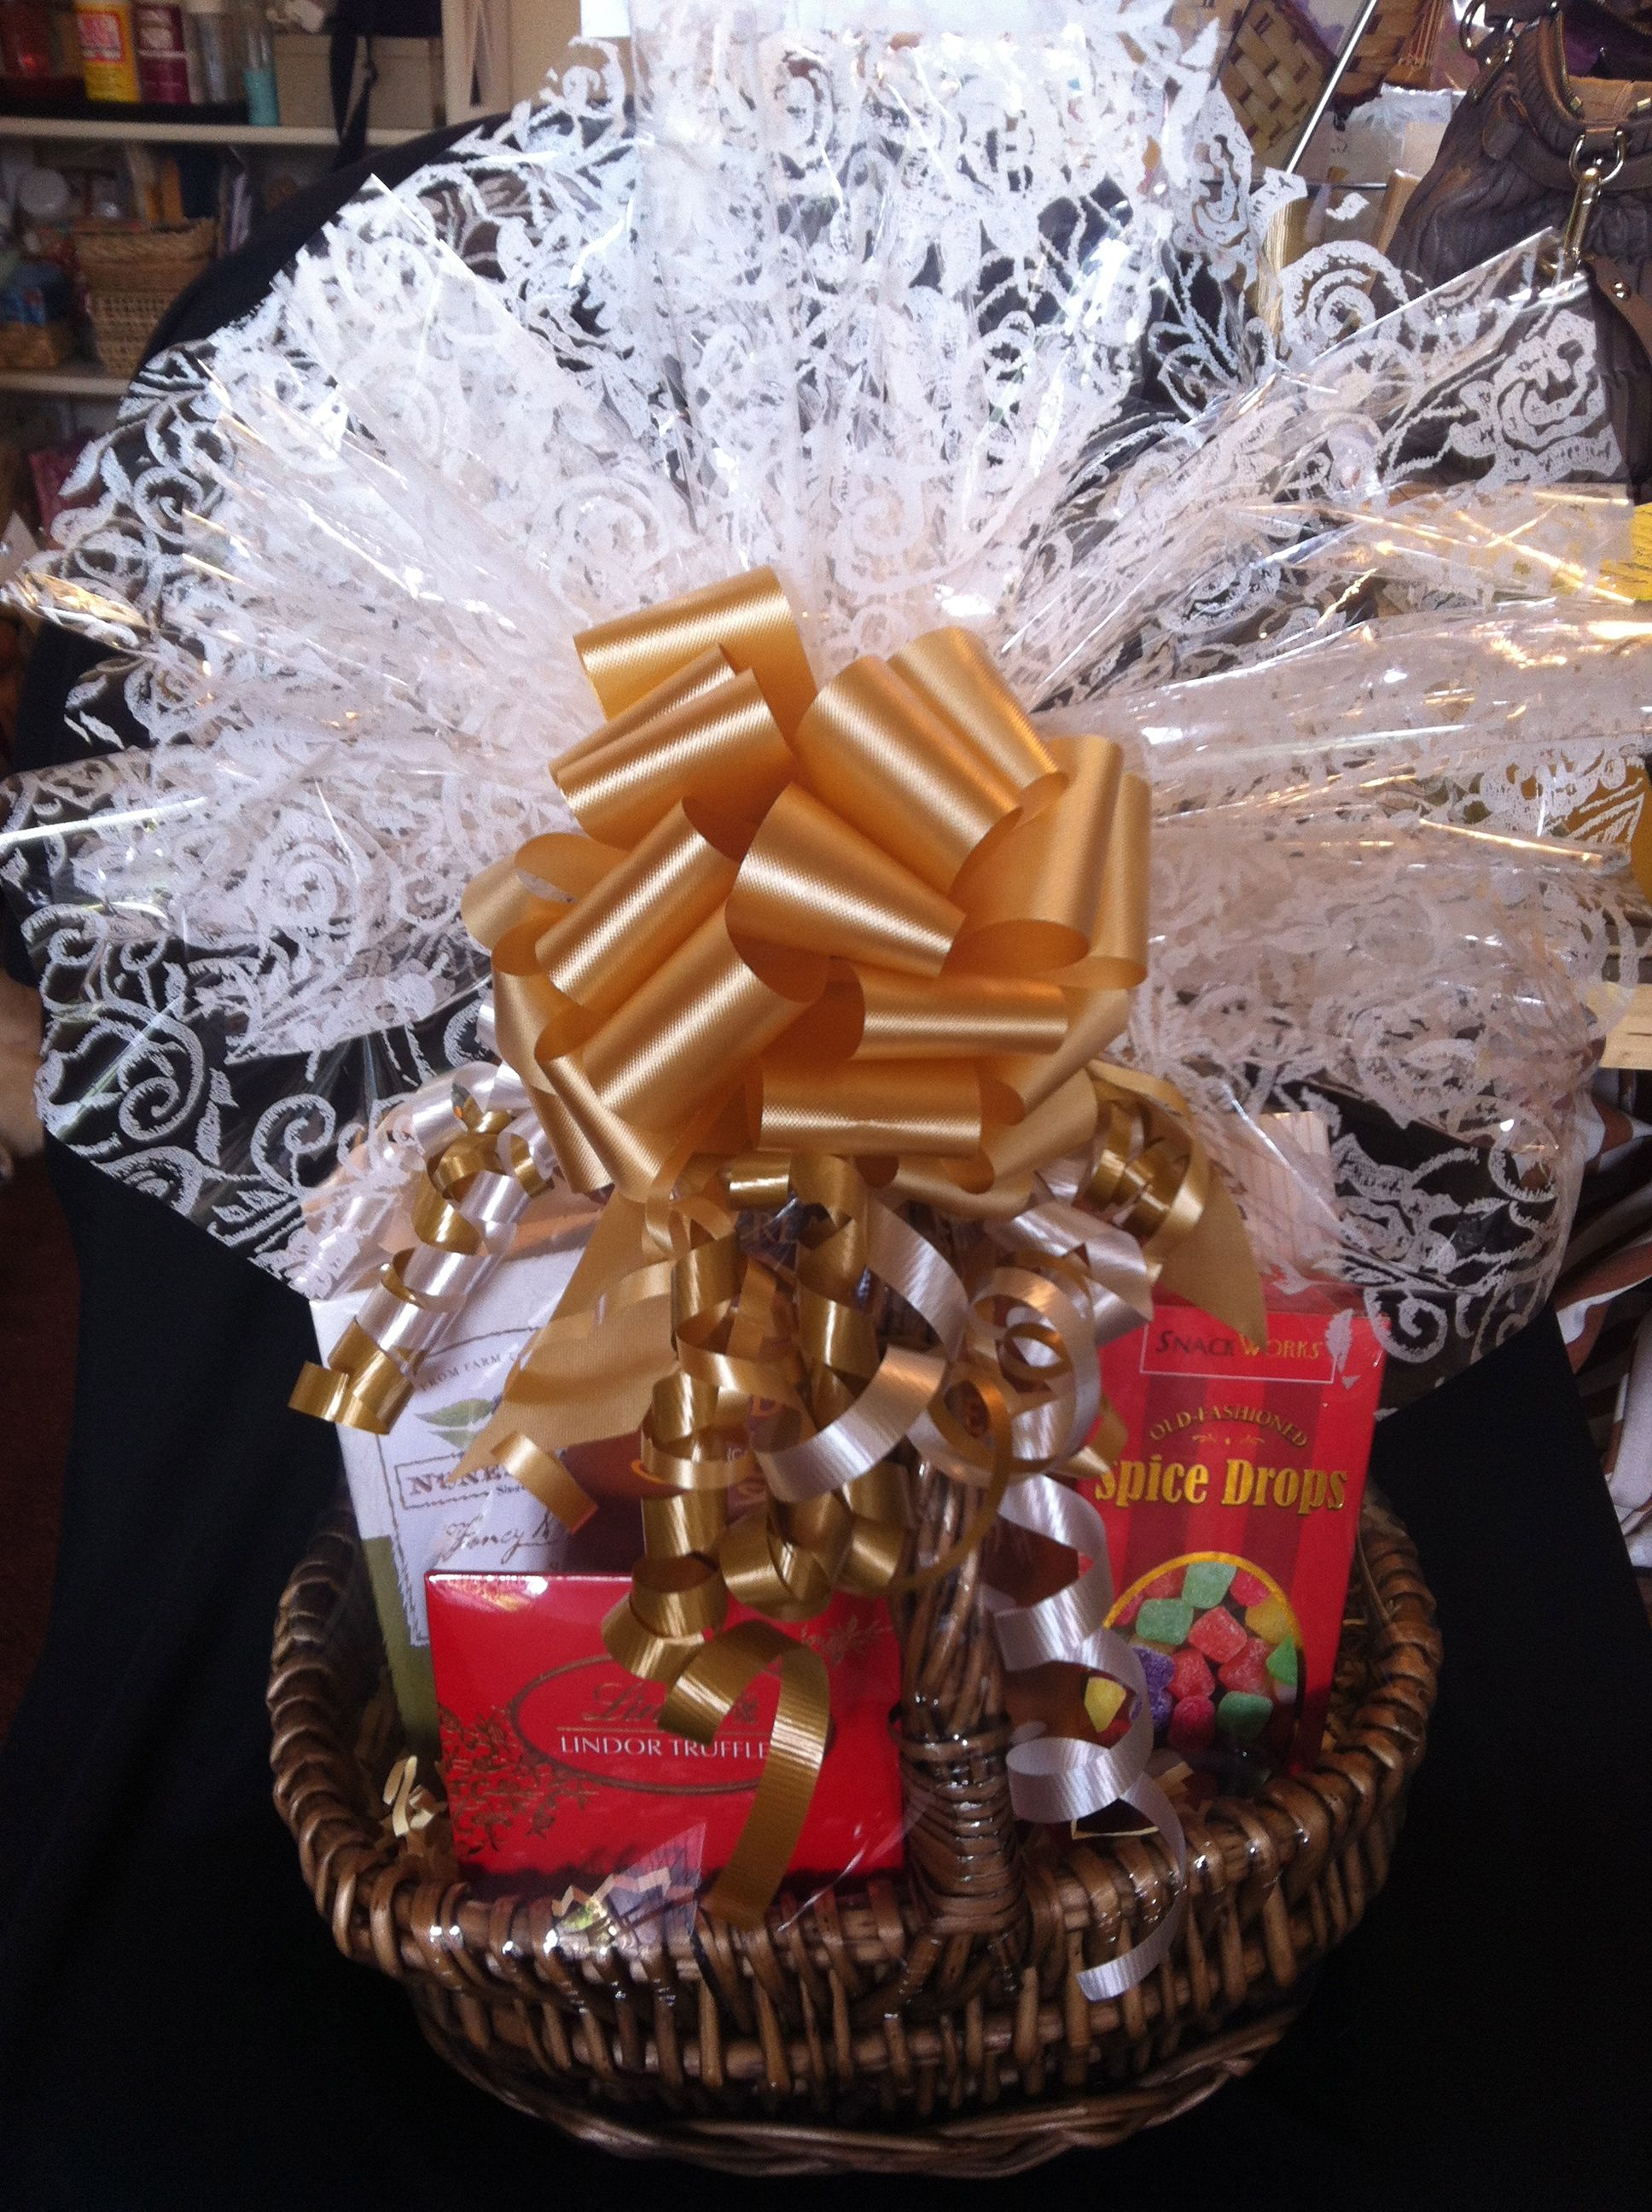 Barber Gifts : Pin by Barbers Gift Baskets, LLC on Gourmet Gift Baskets Pinterest